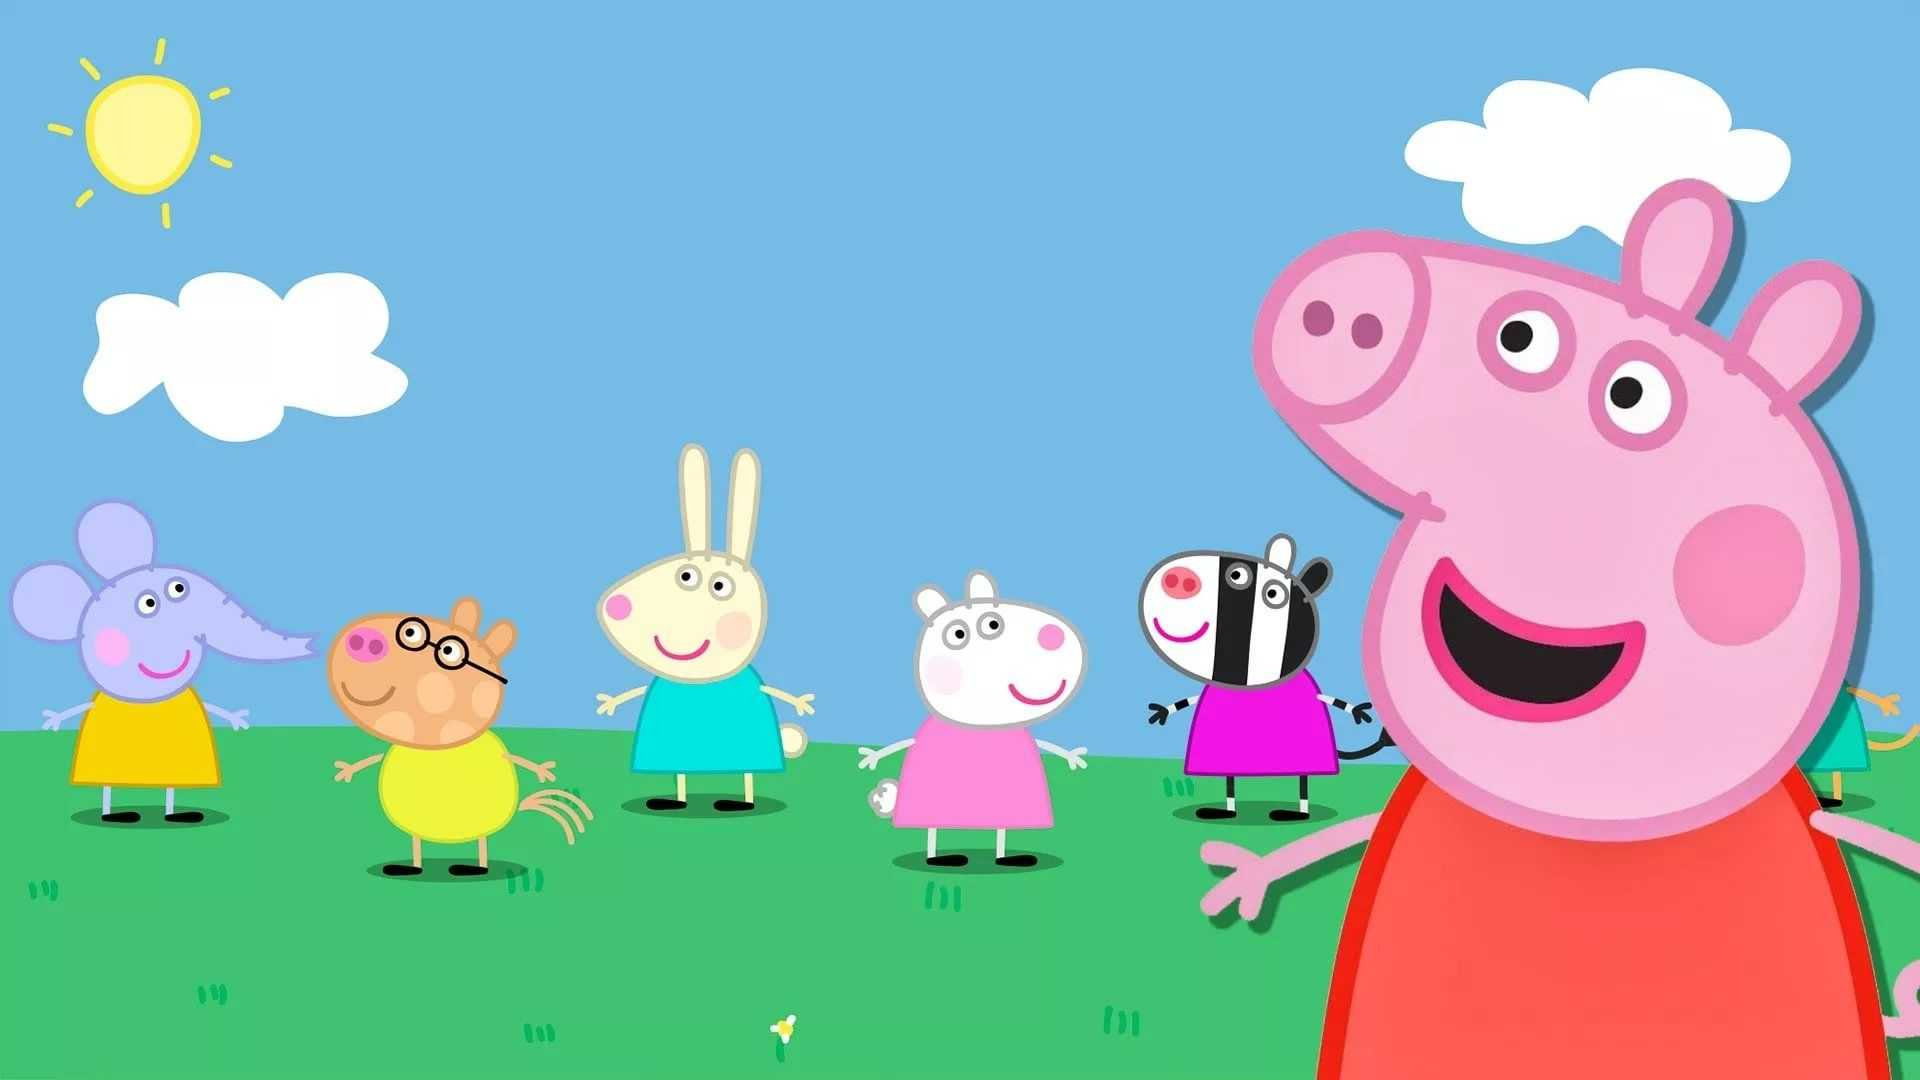 Peppa Pig House Wallpaper   EnJpg